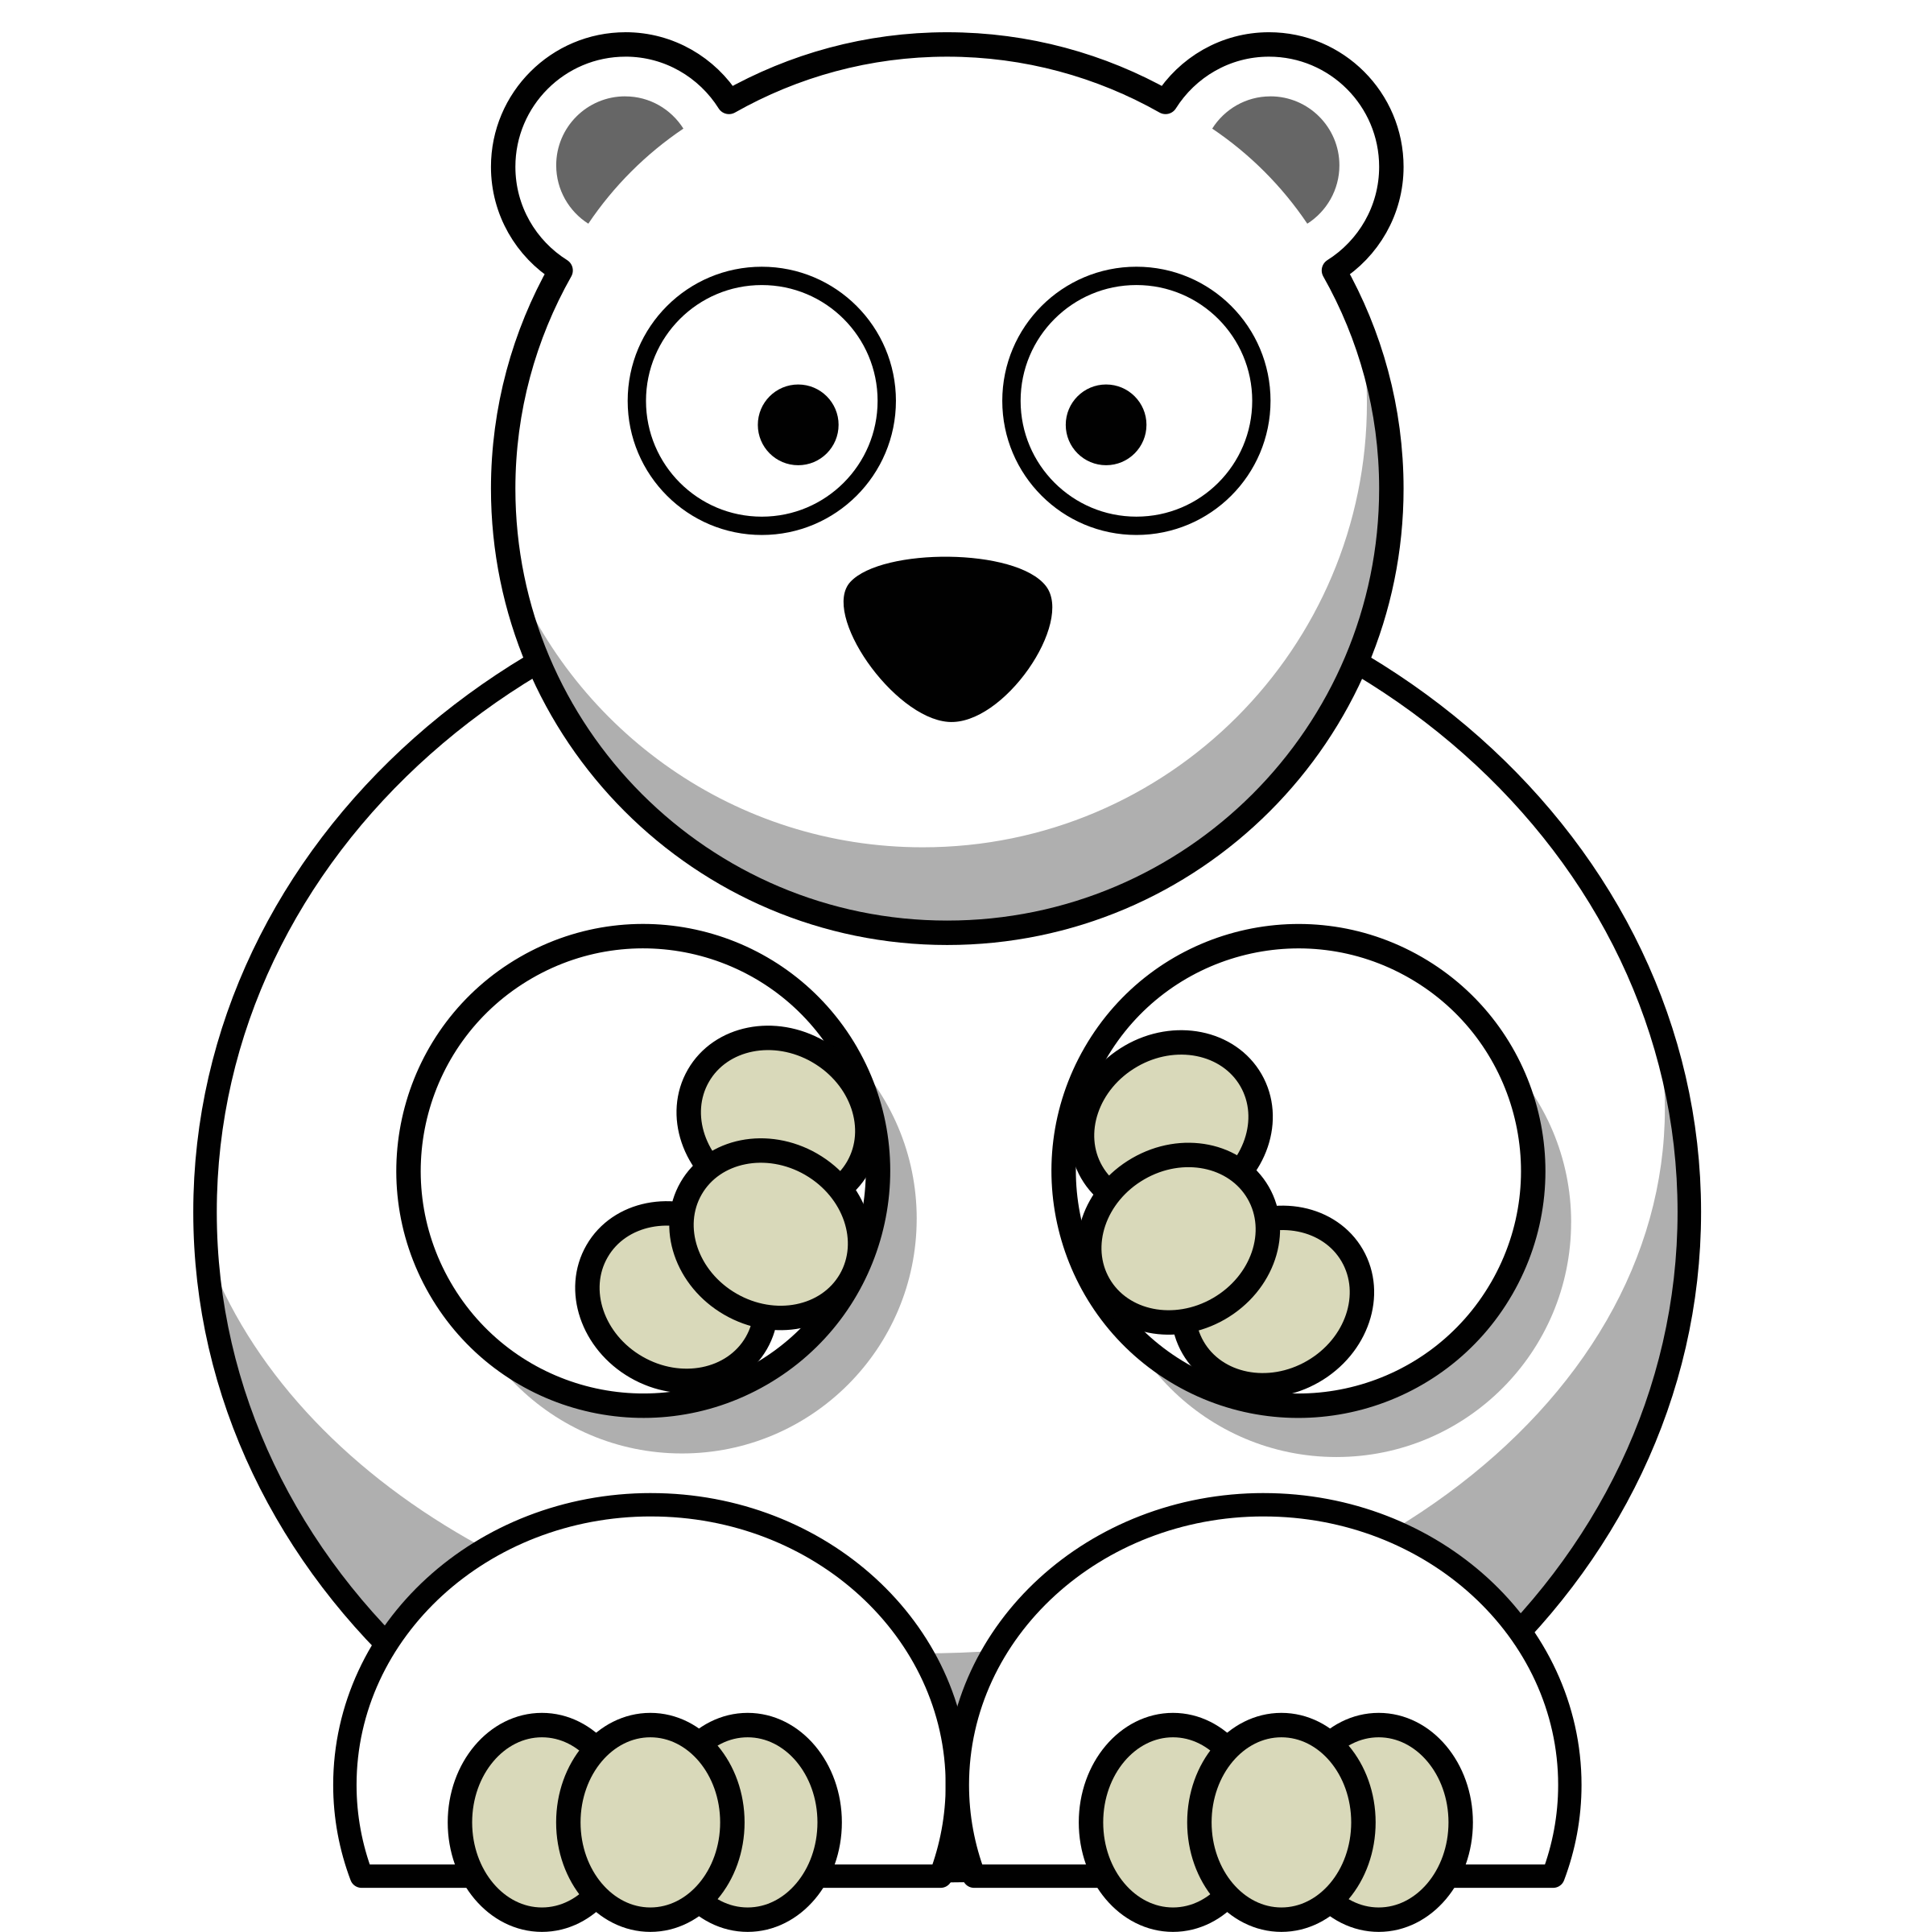 Family clipart polar bear. Remix by anarres a